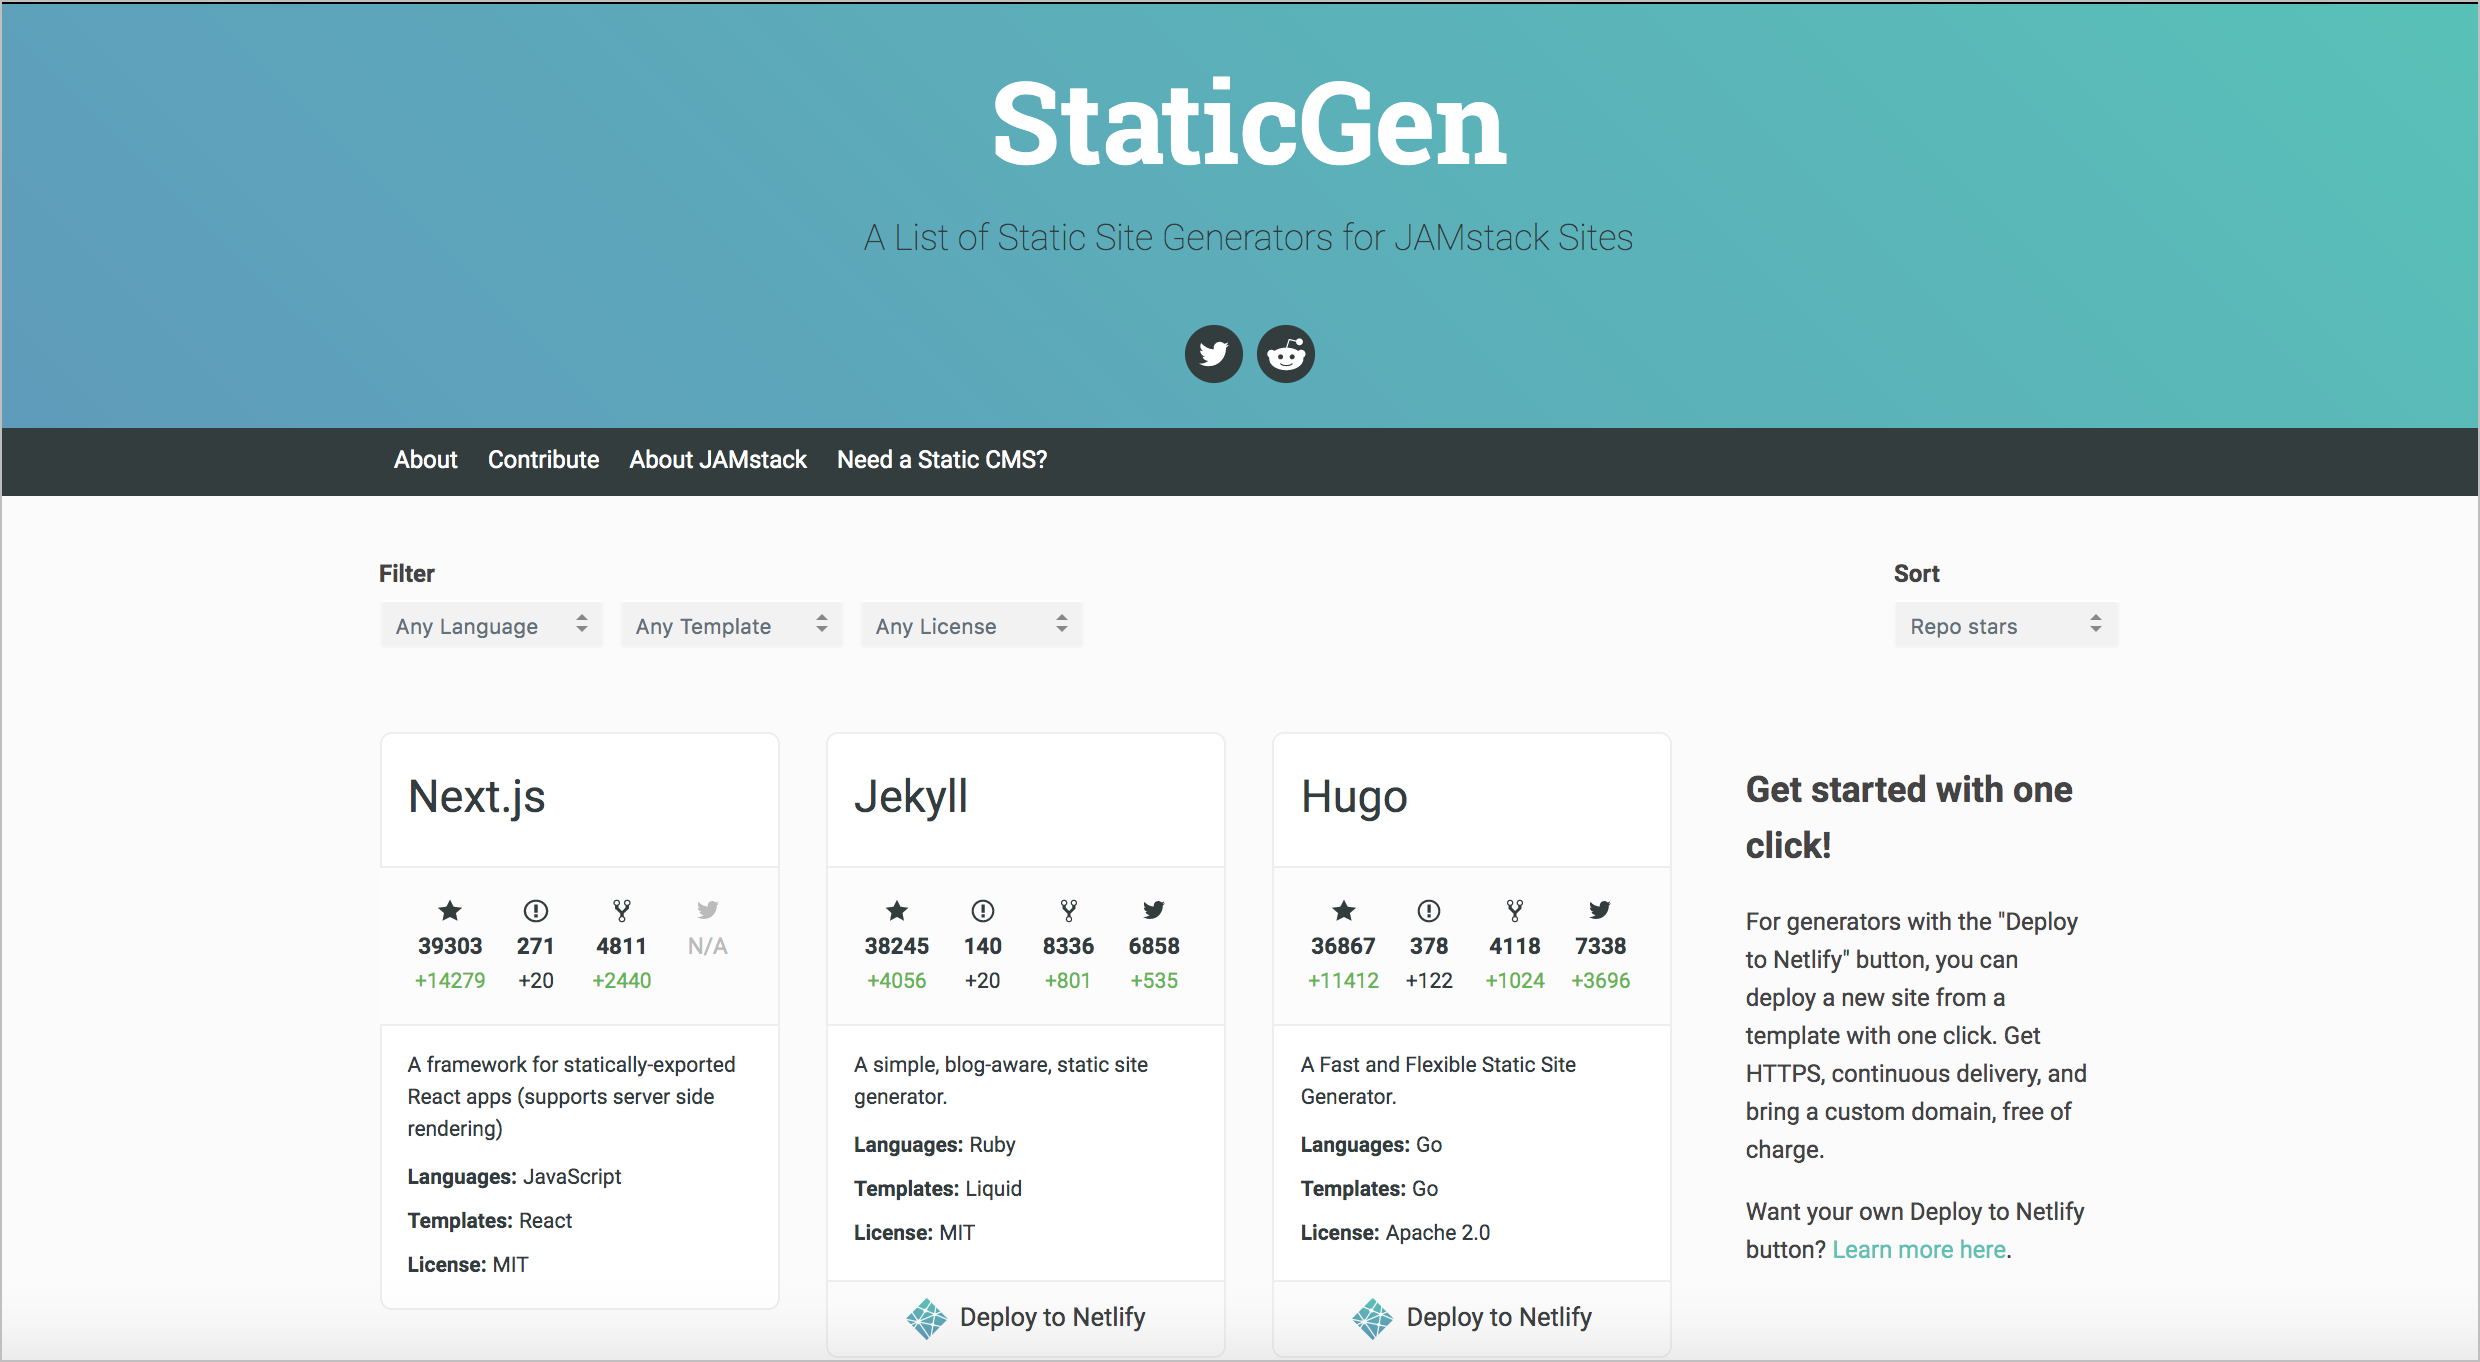 Top static site generators